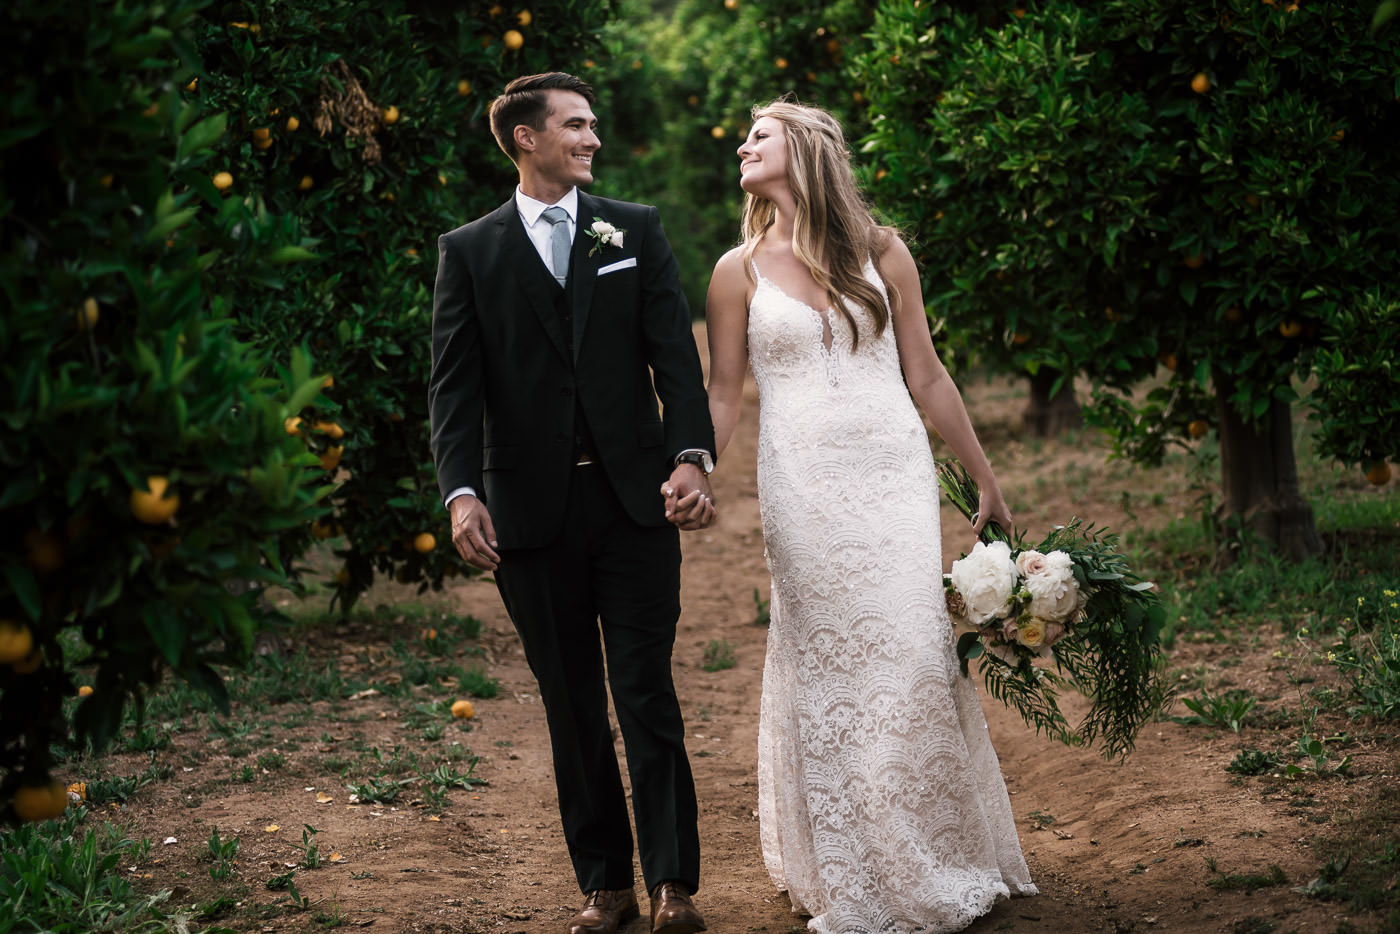 Happy couple is all smiles as they triumphantly walk through the trees of the orchard on the way to their wedding reception in Temecula California